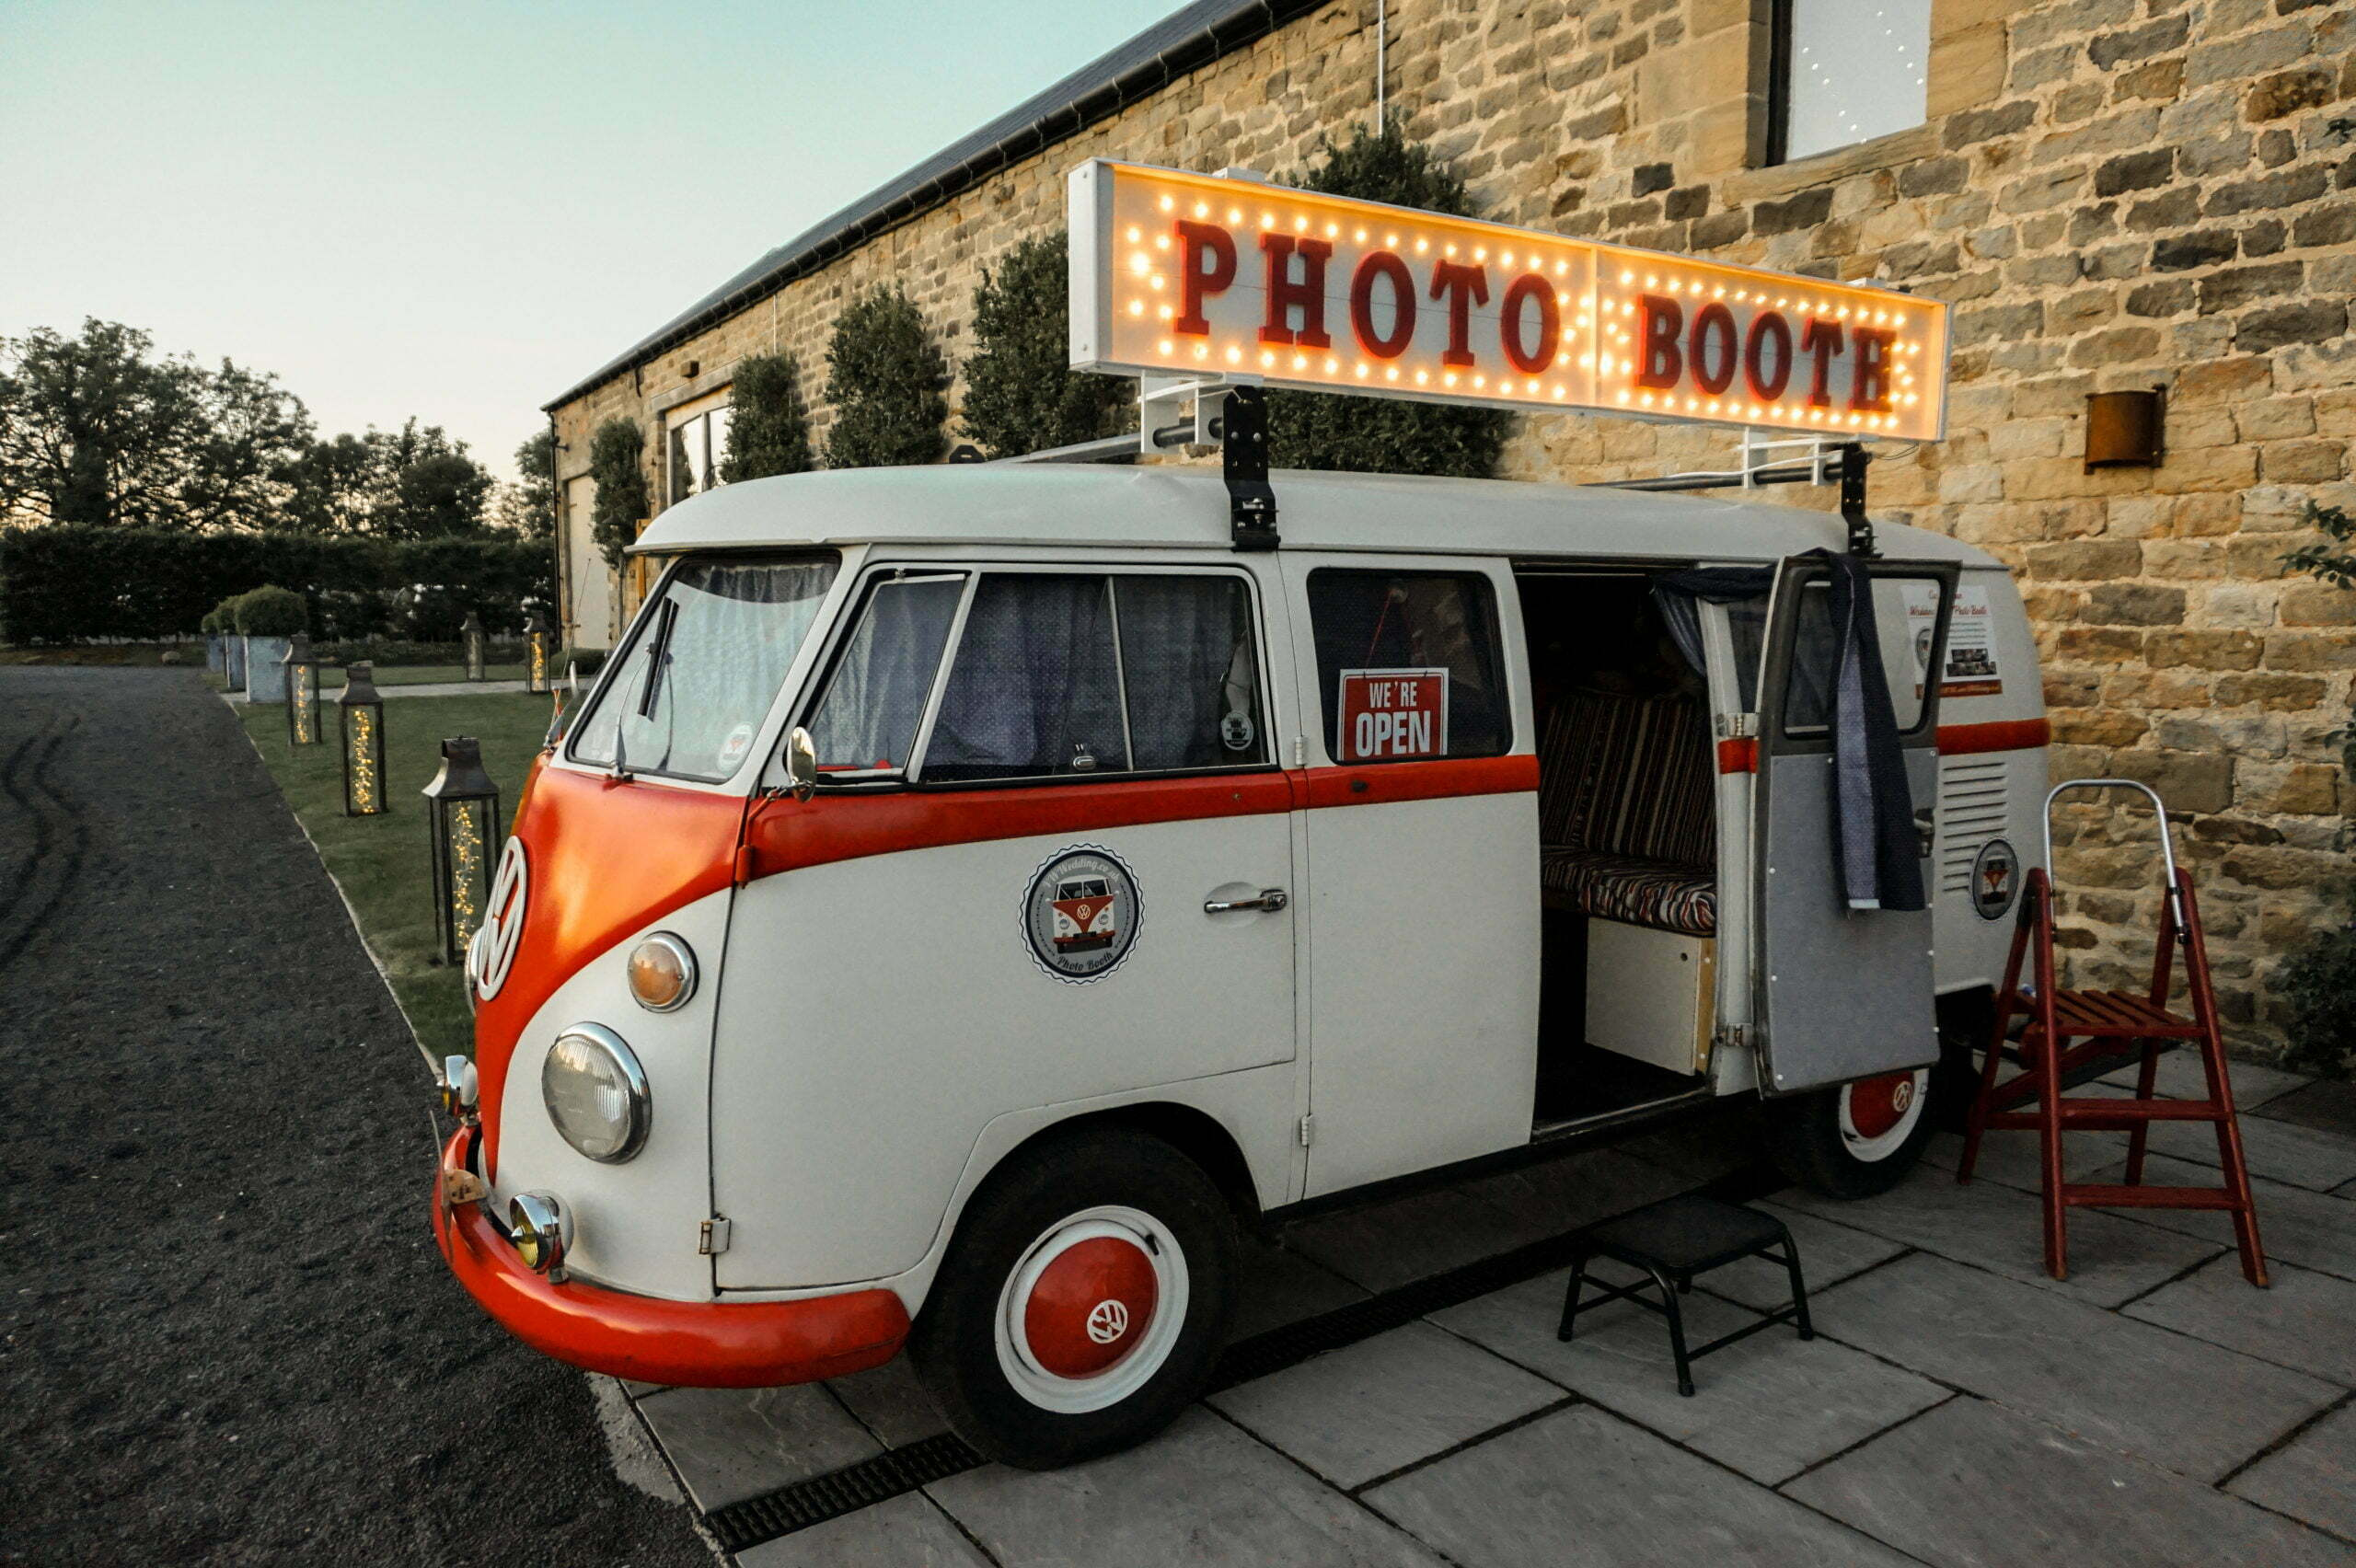 VW Camper Photo Booth At Wedding